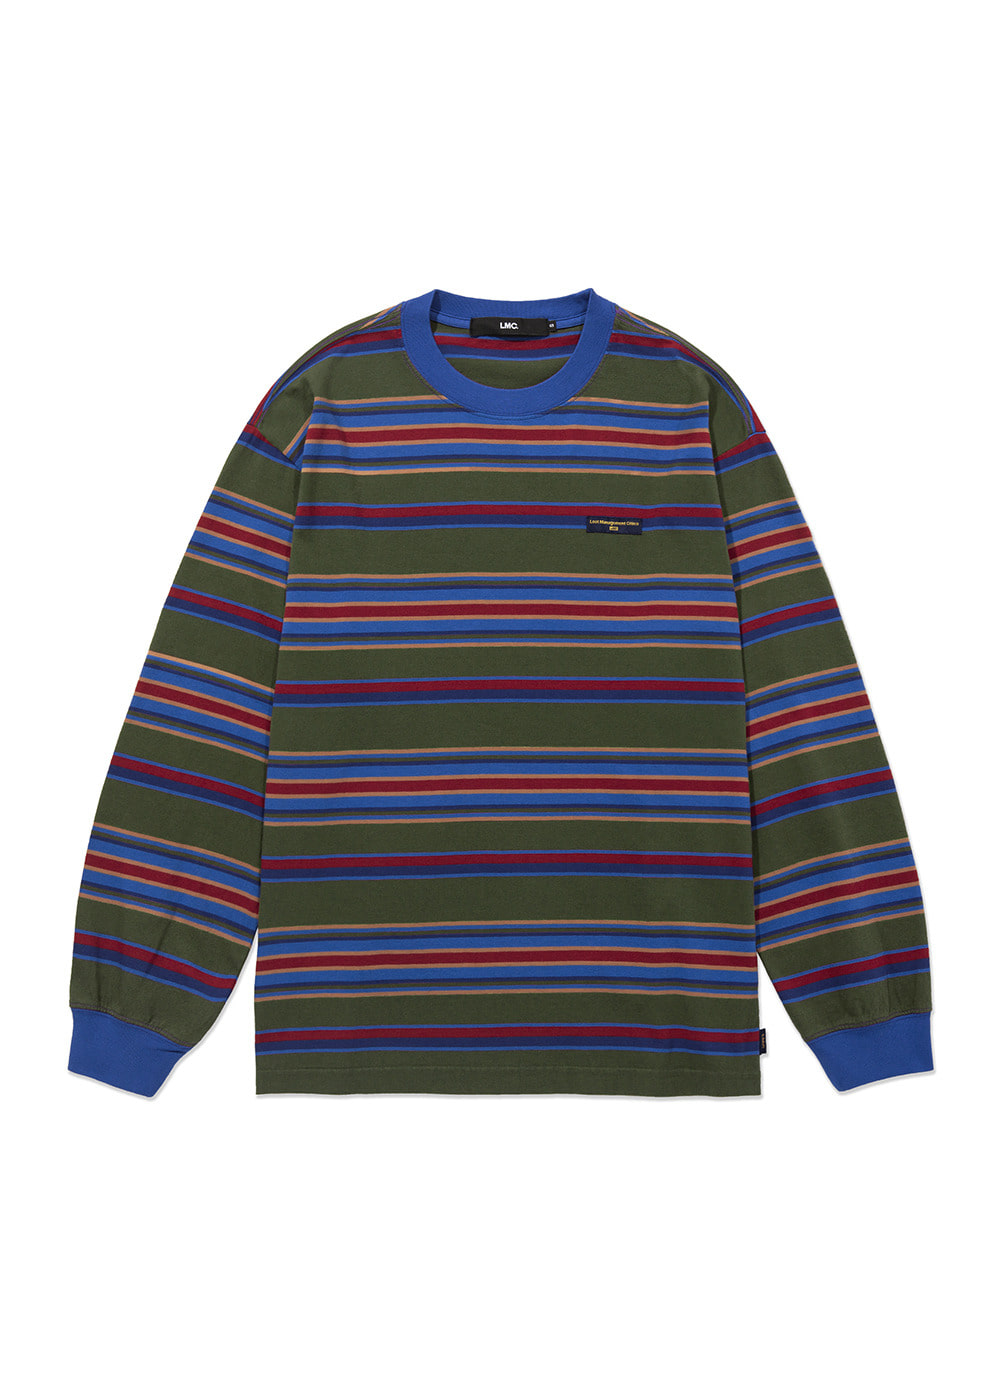 LMC MULTI STRIPE LONG SLV TEE olive